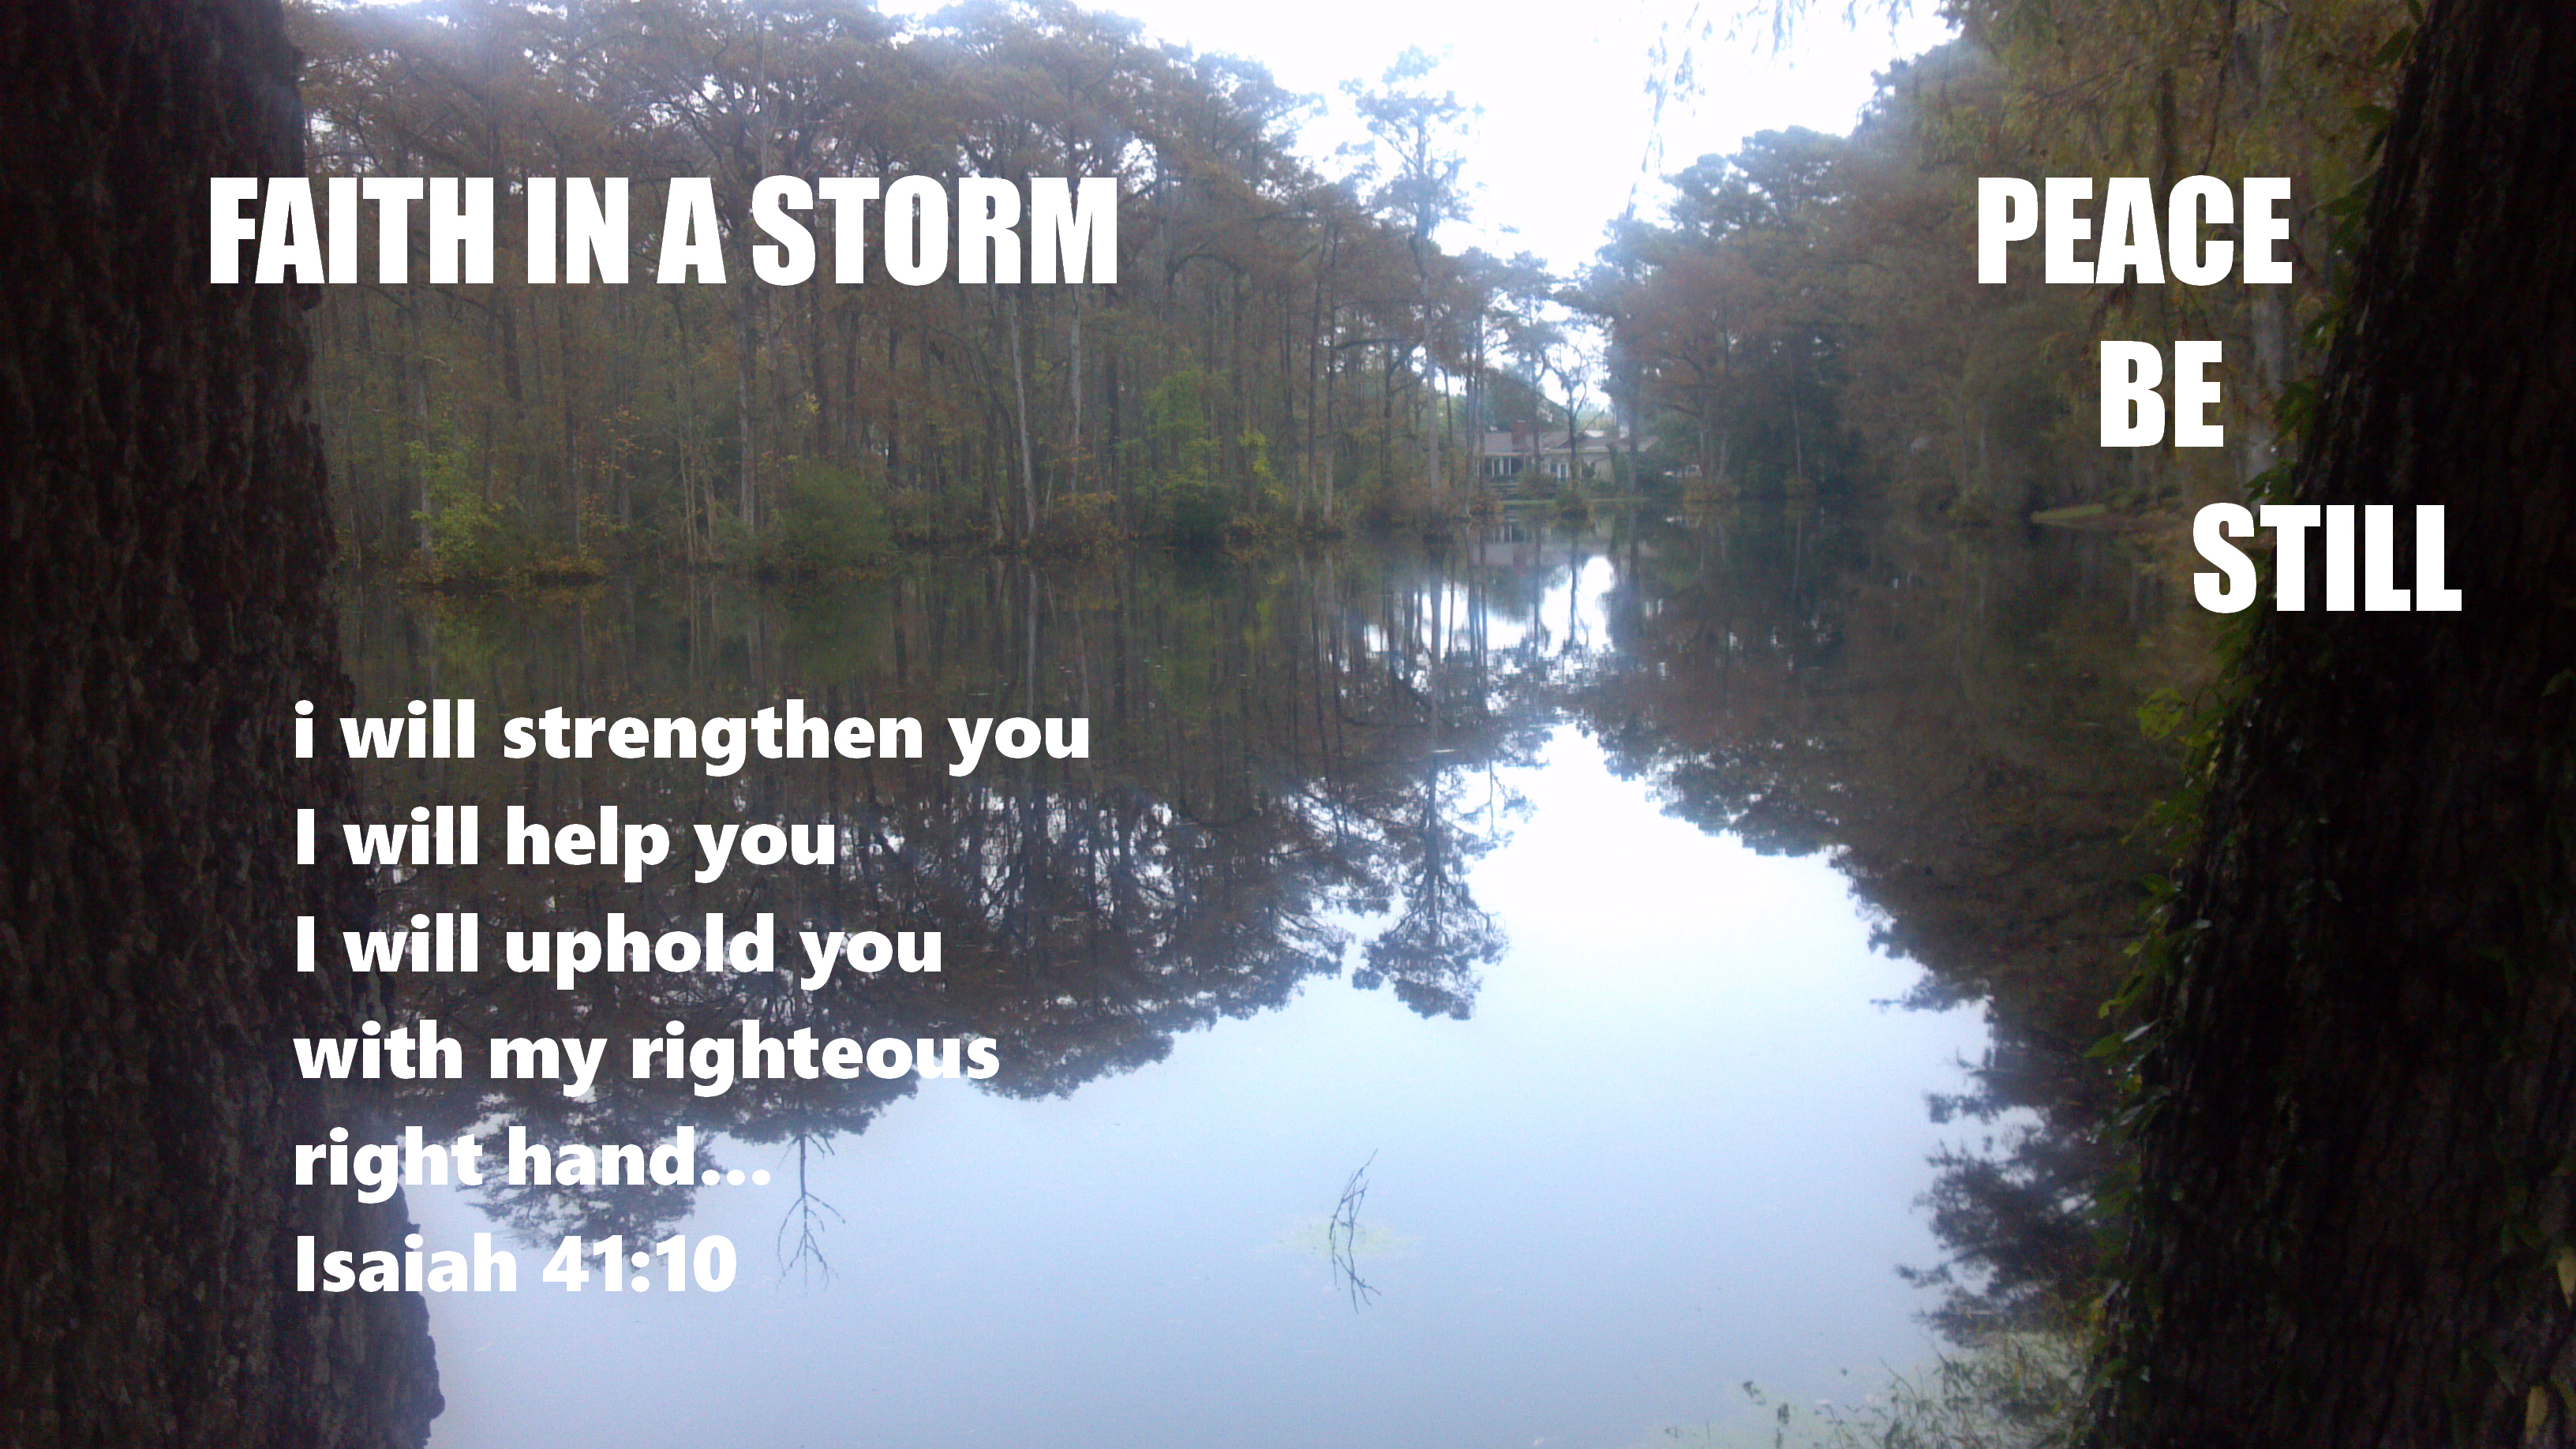 Faith in a Storm (Photo by Pastor Davis)